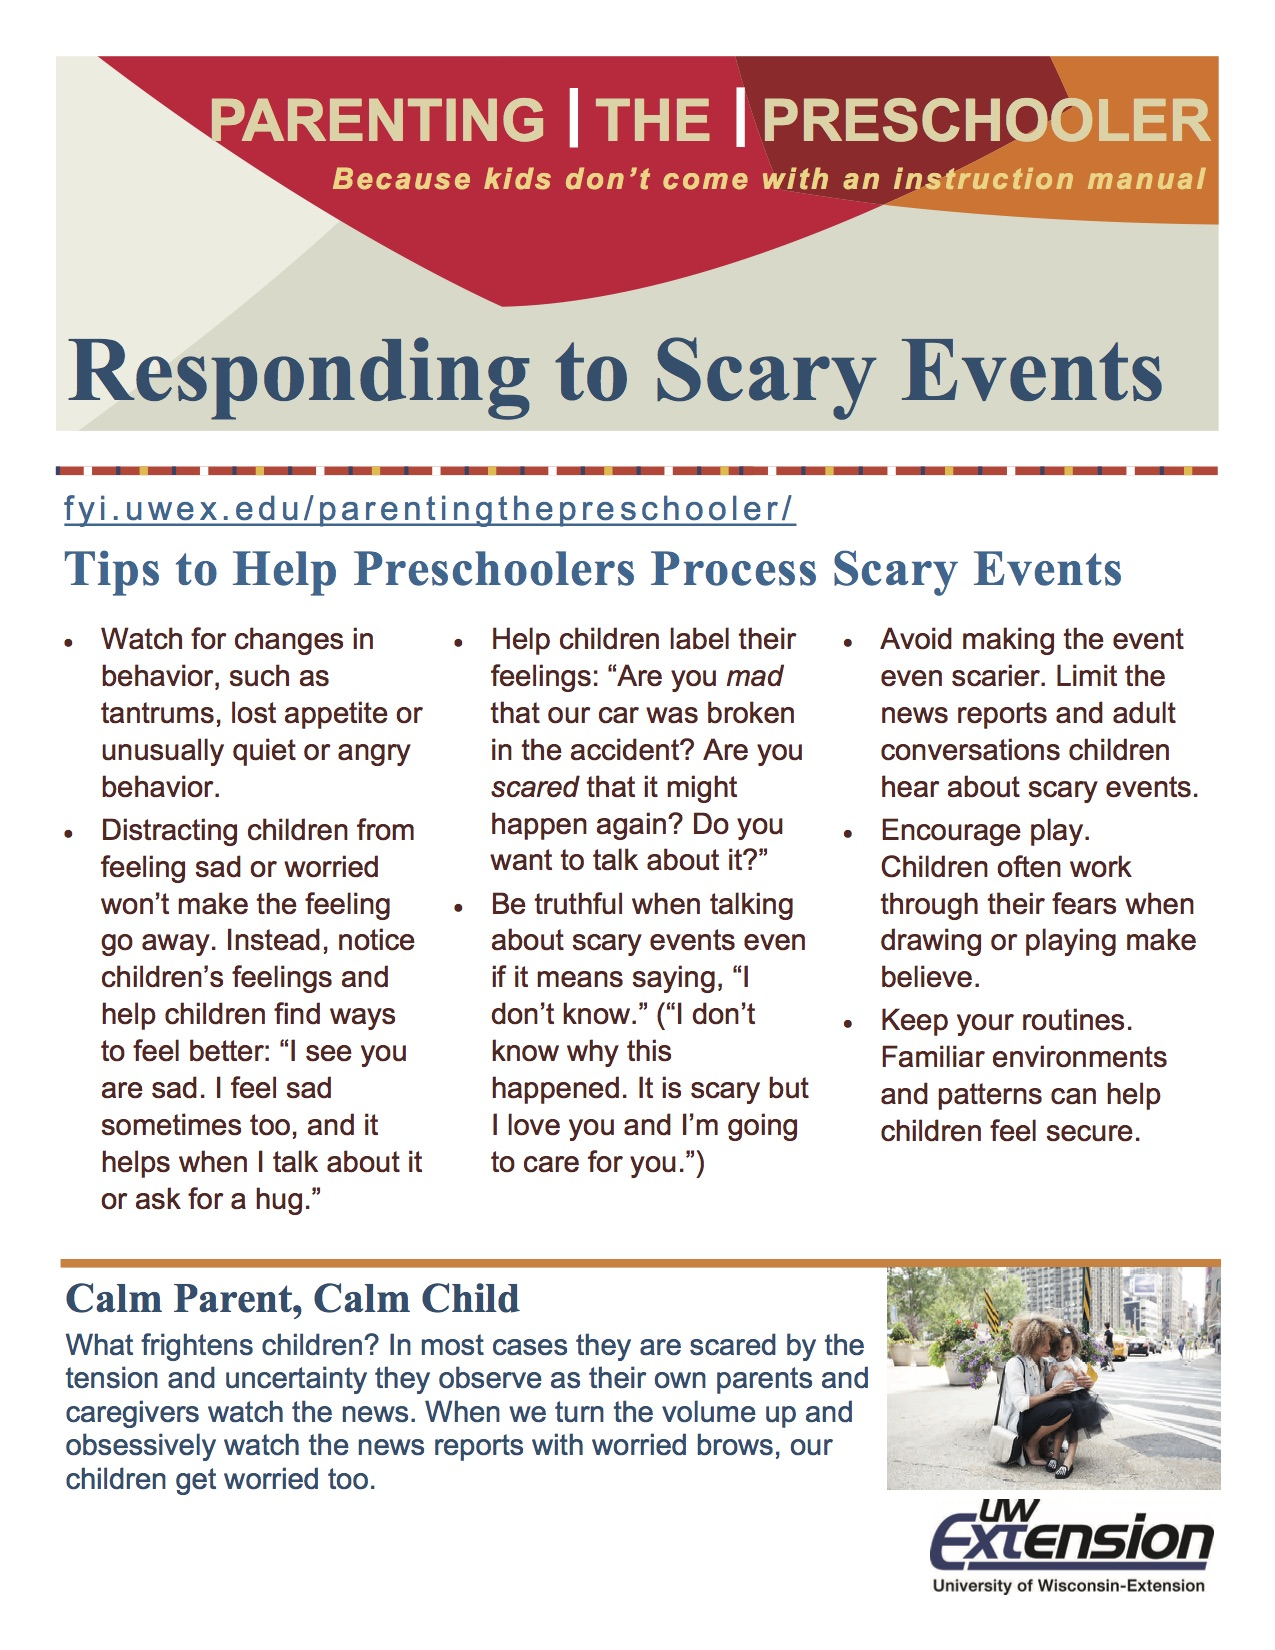 PtP Scary Events1